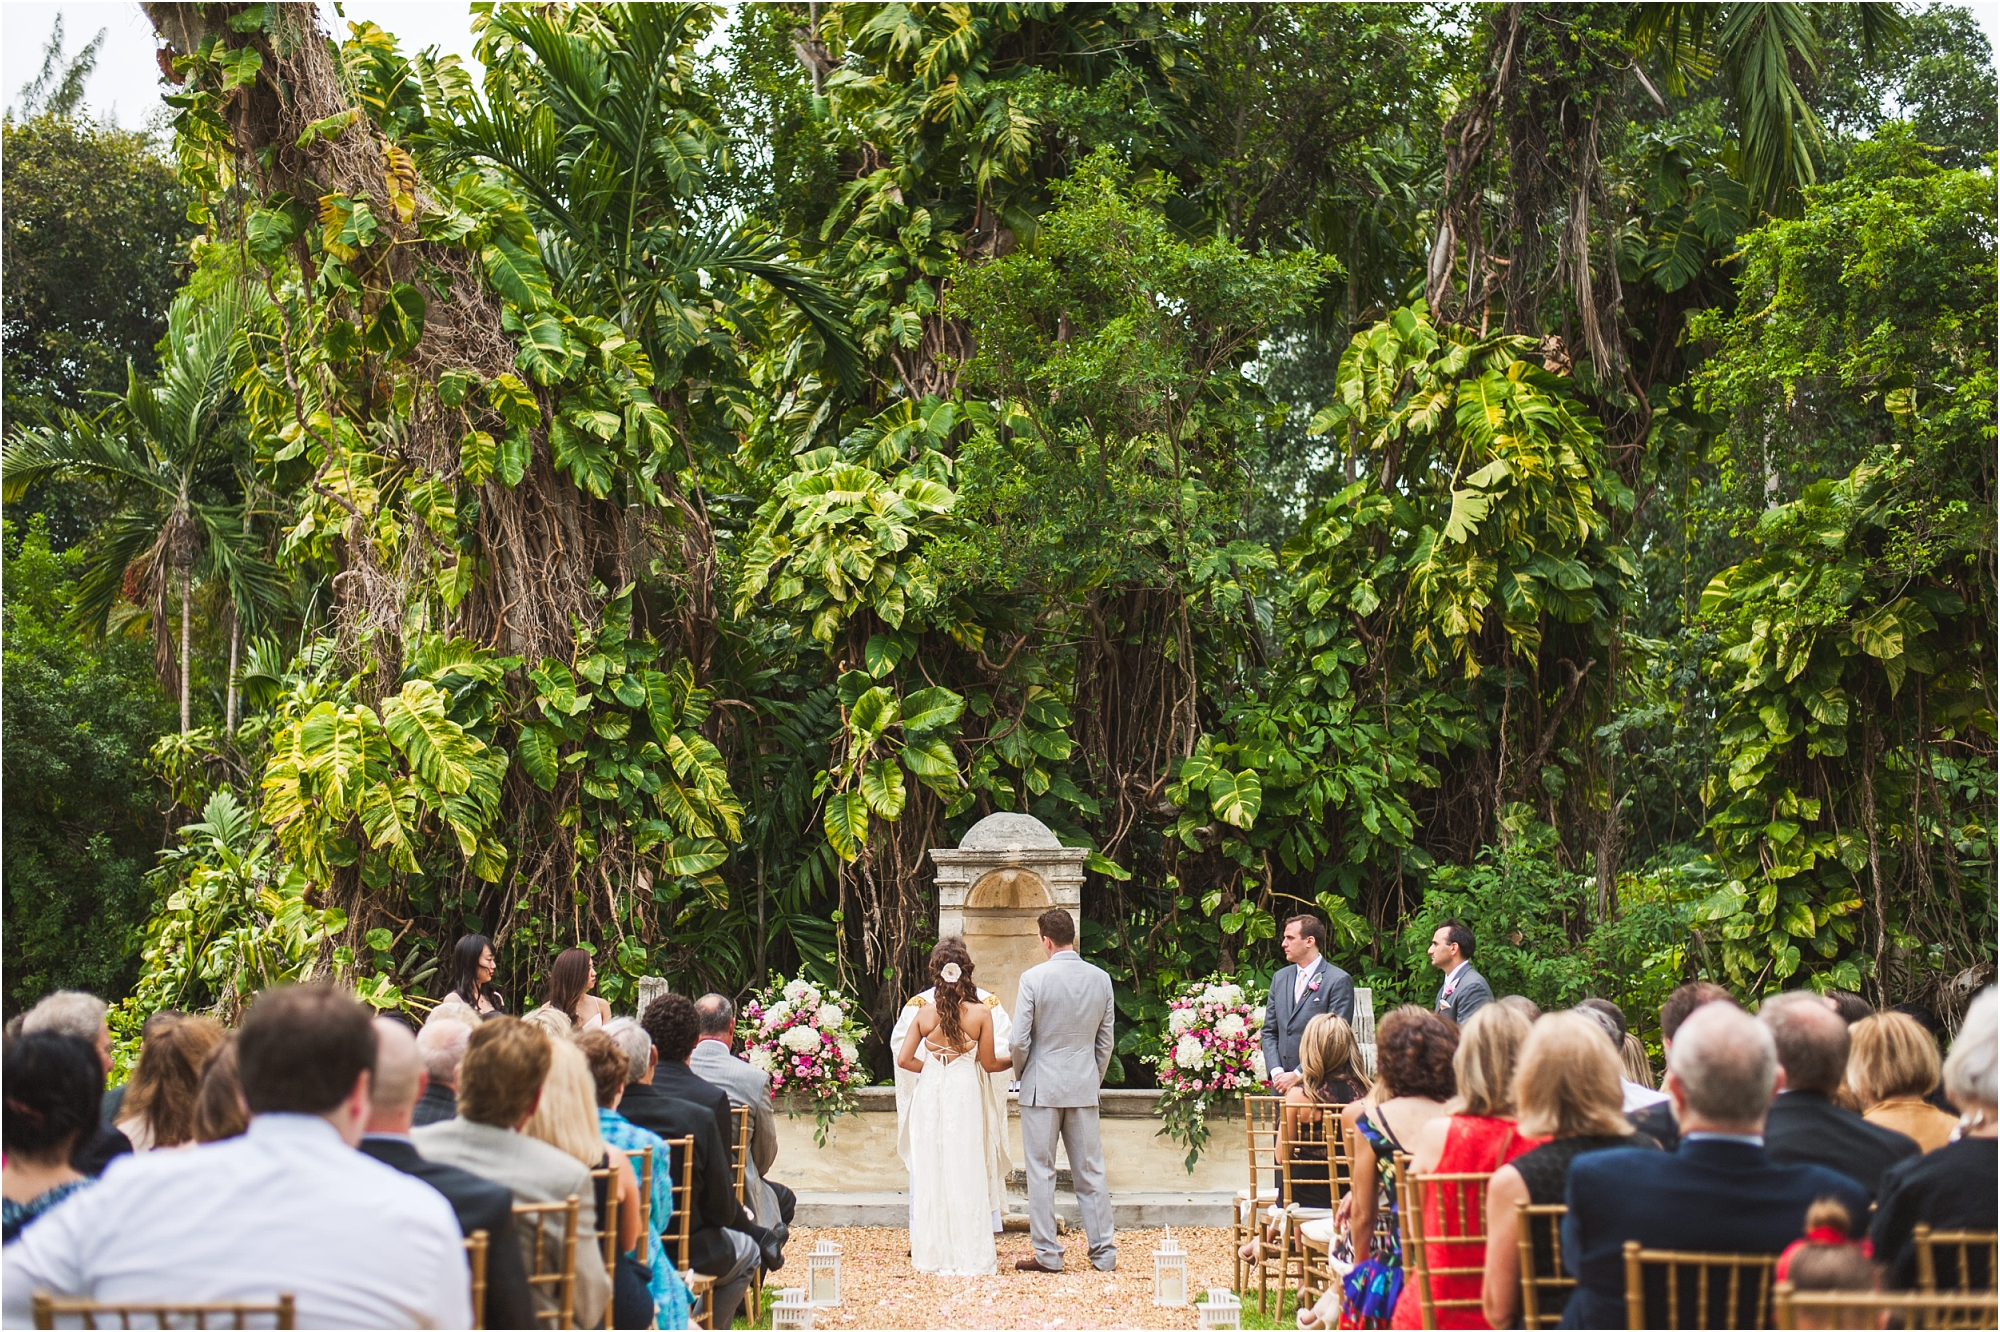 Spanish-Monastery-miami-beach-outdoor-elegant-wedding-photographer-jessenia-gonzalez_1165.jpg